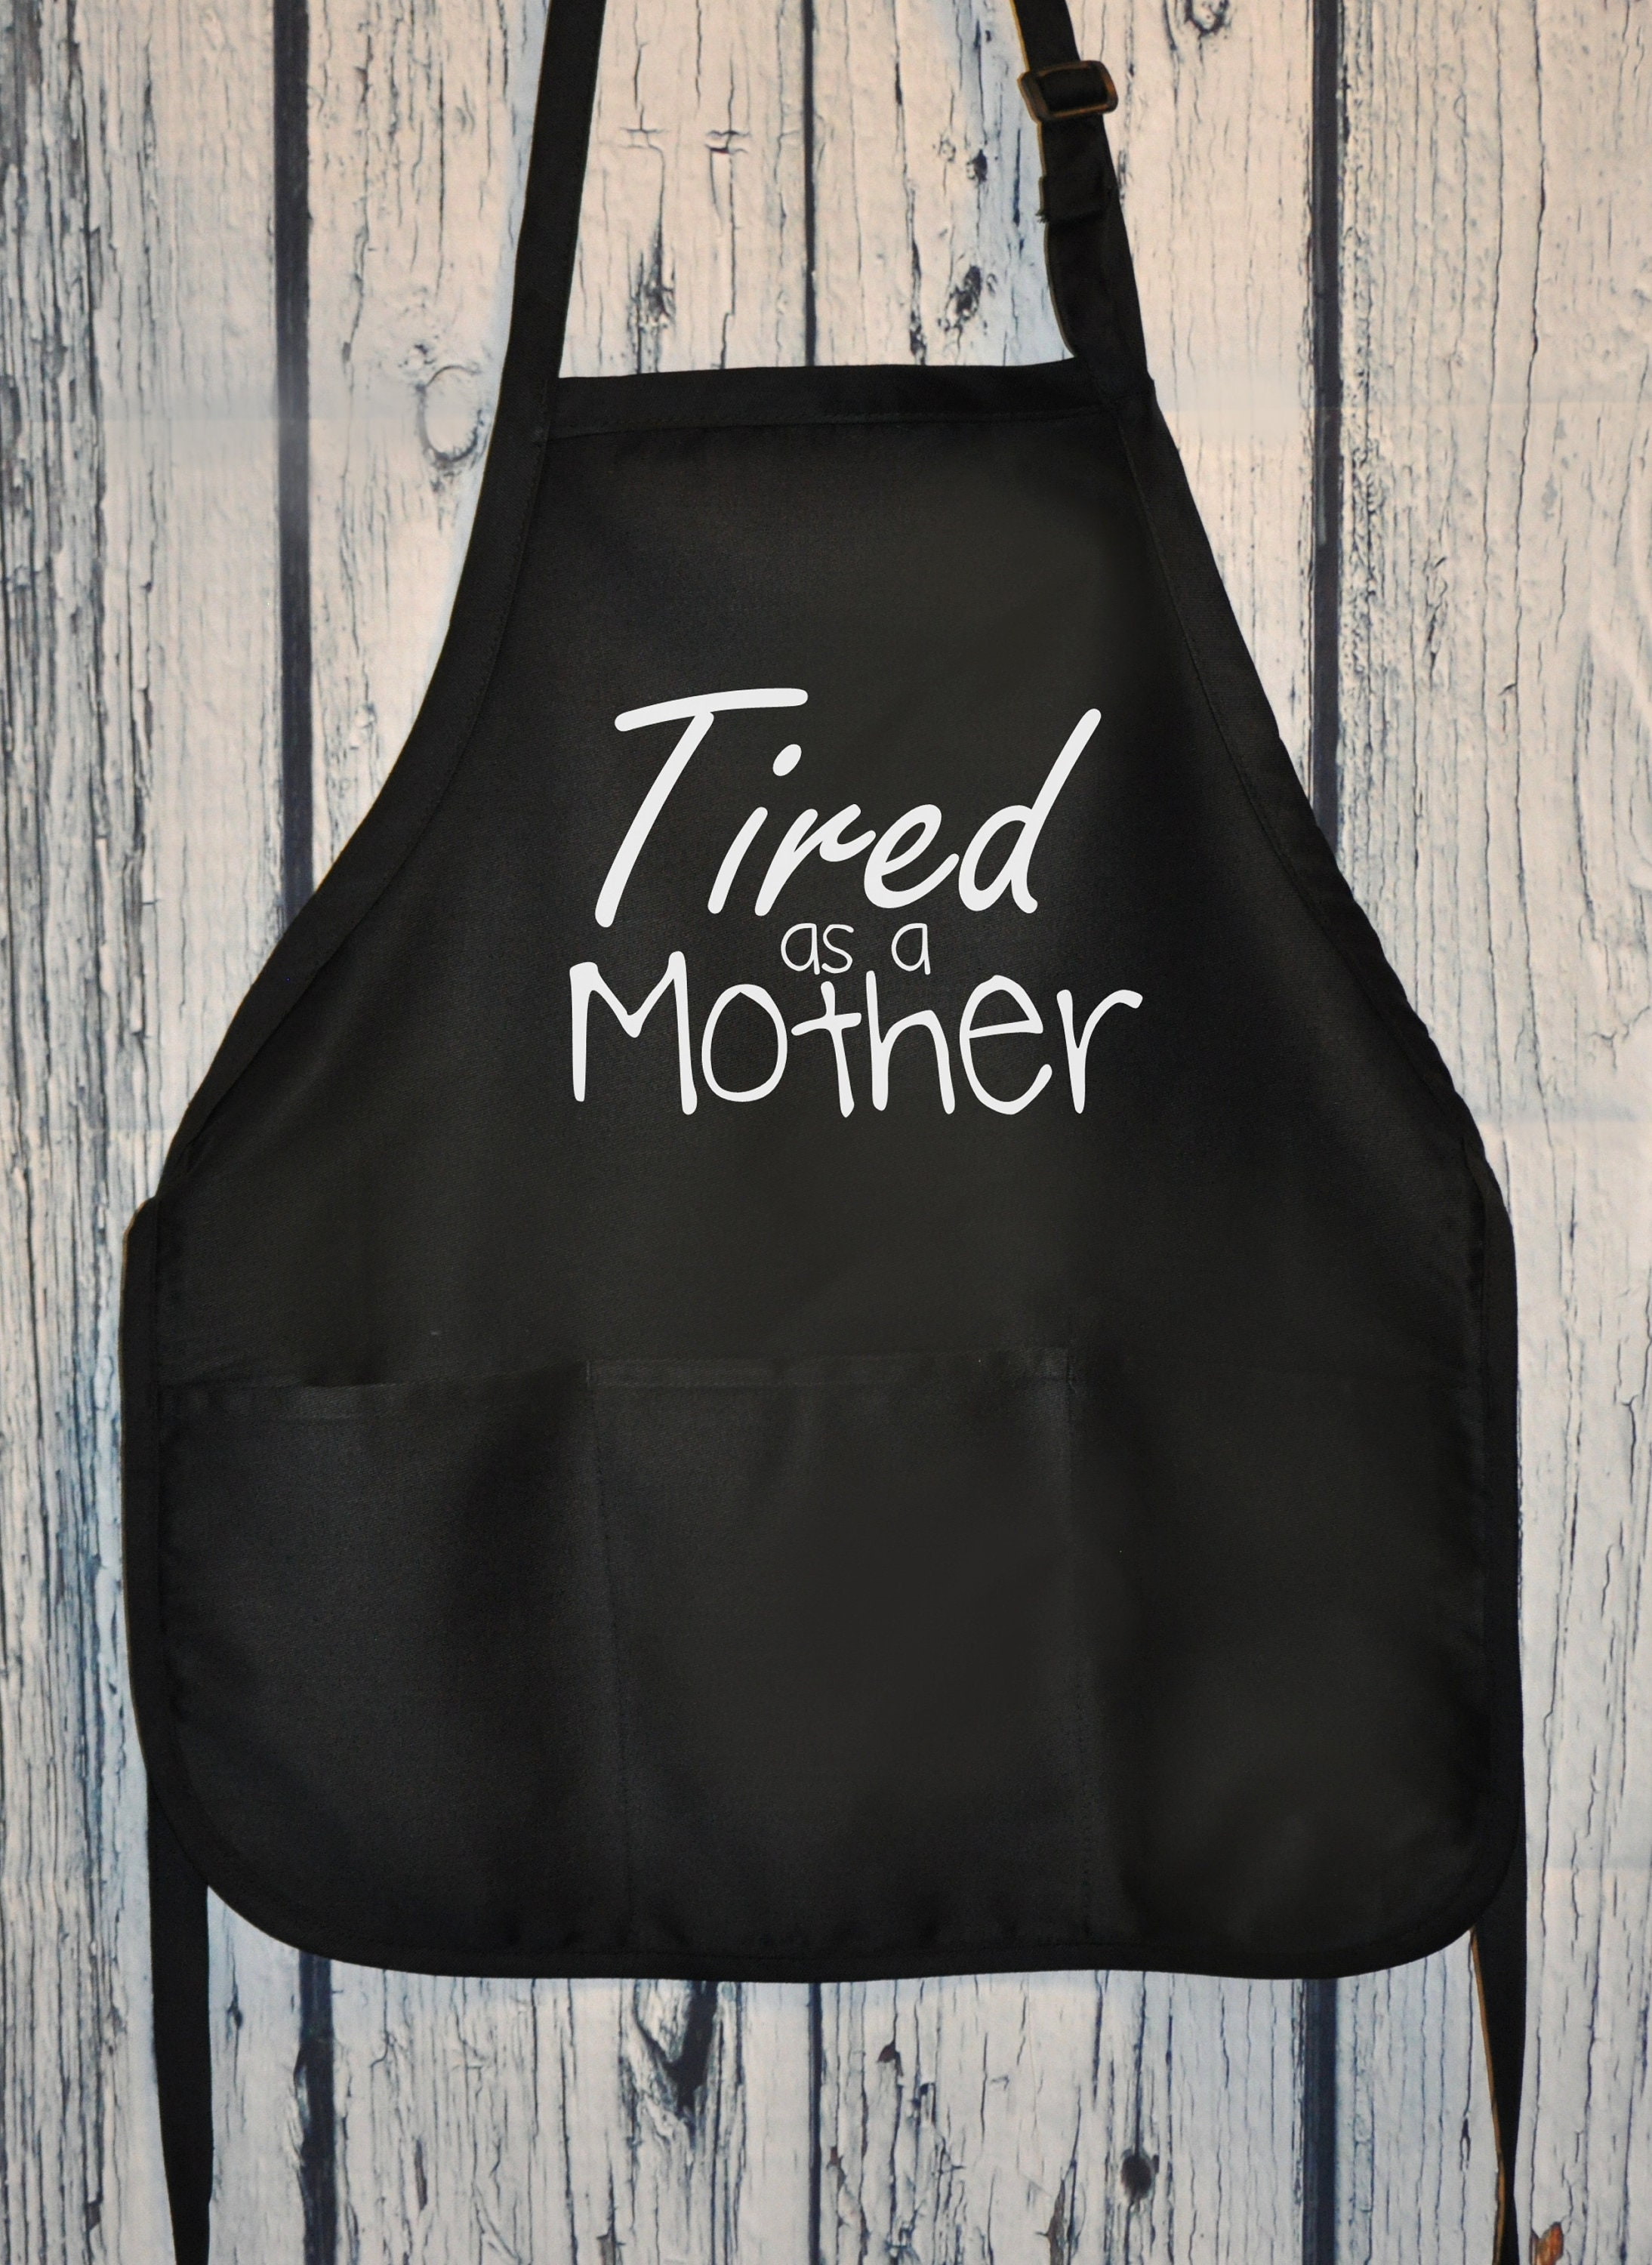 Tired as a Mother Kitchen Apron Pocket Cooking Gift for Mothers Day Christmas